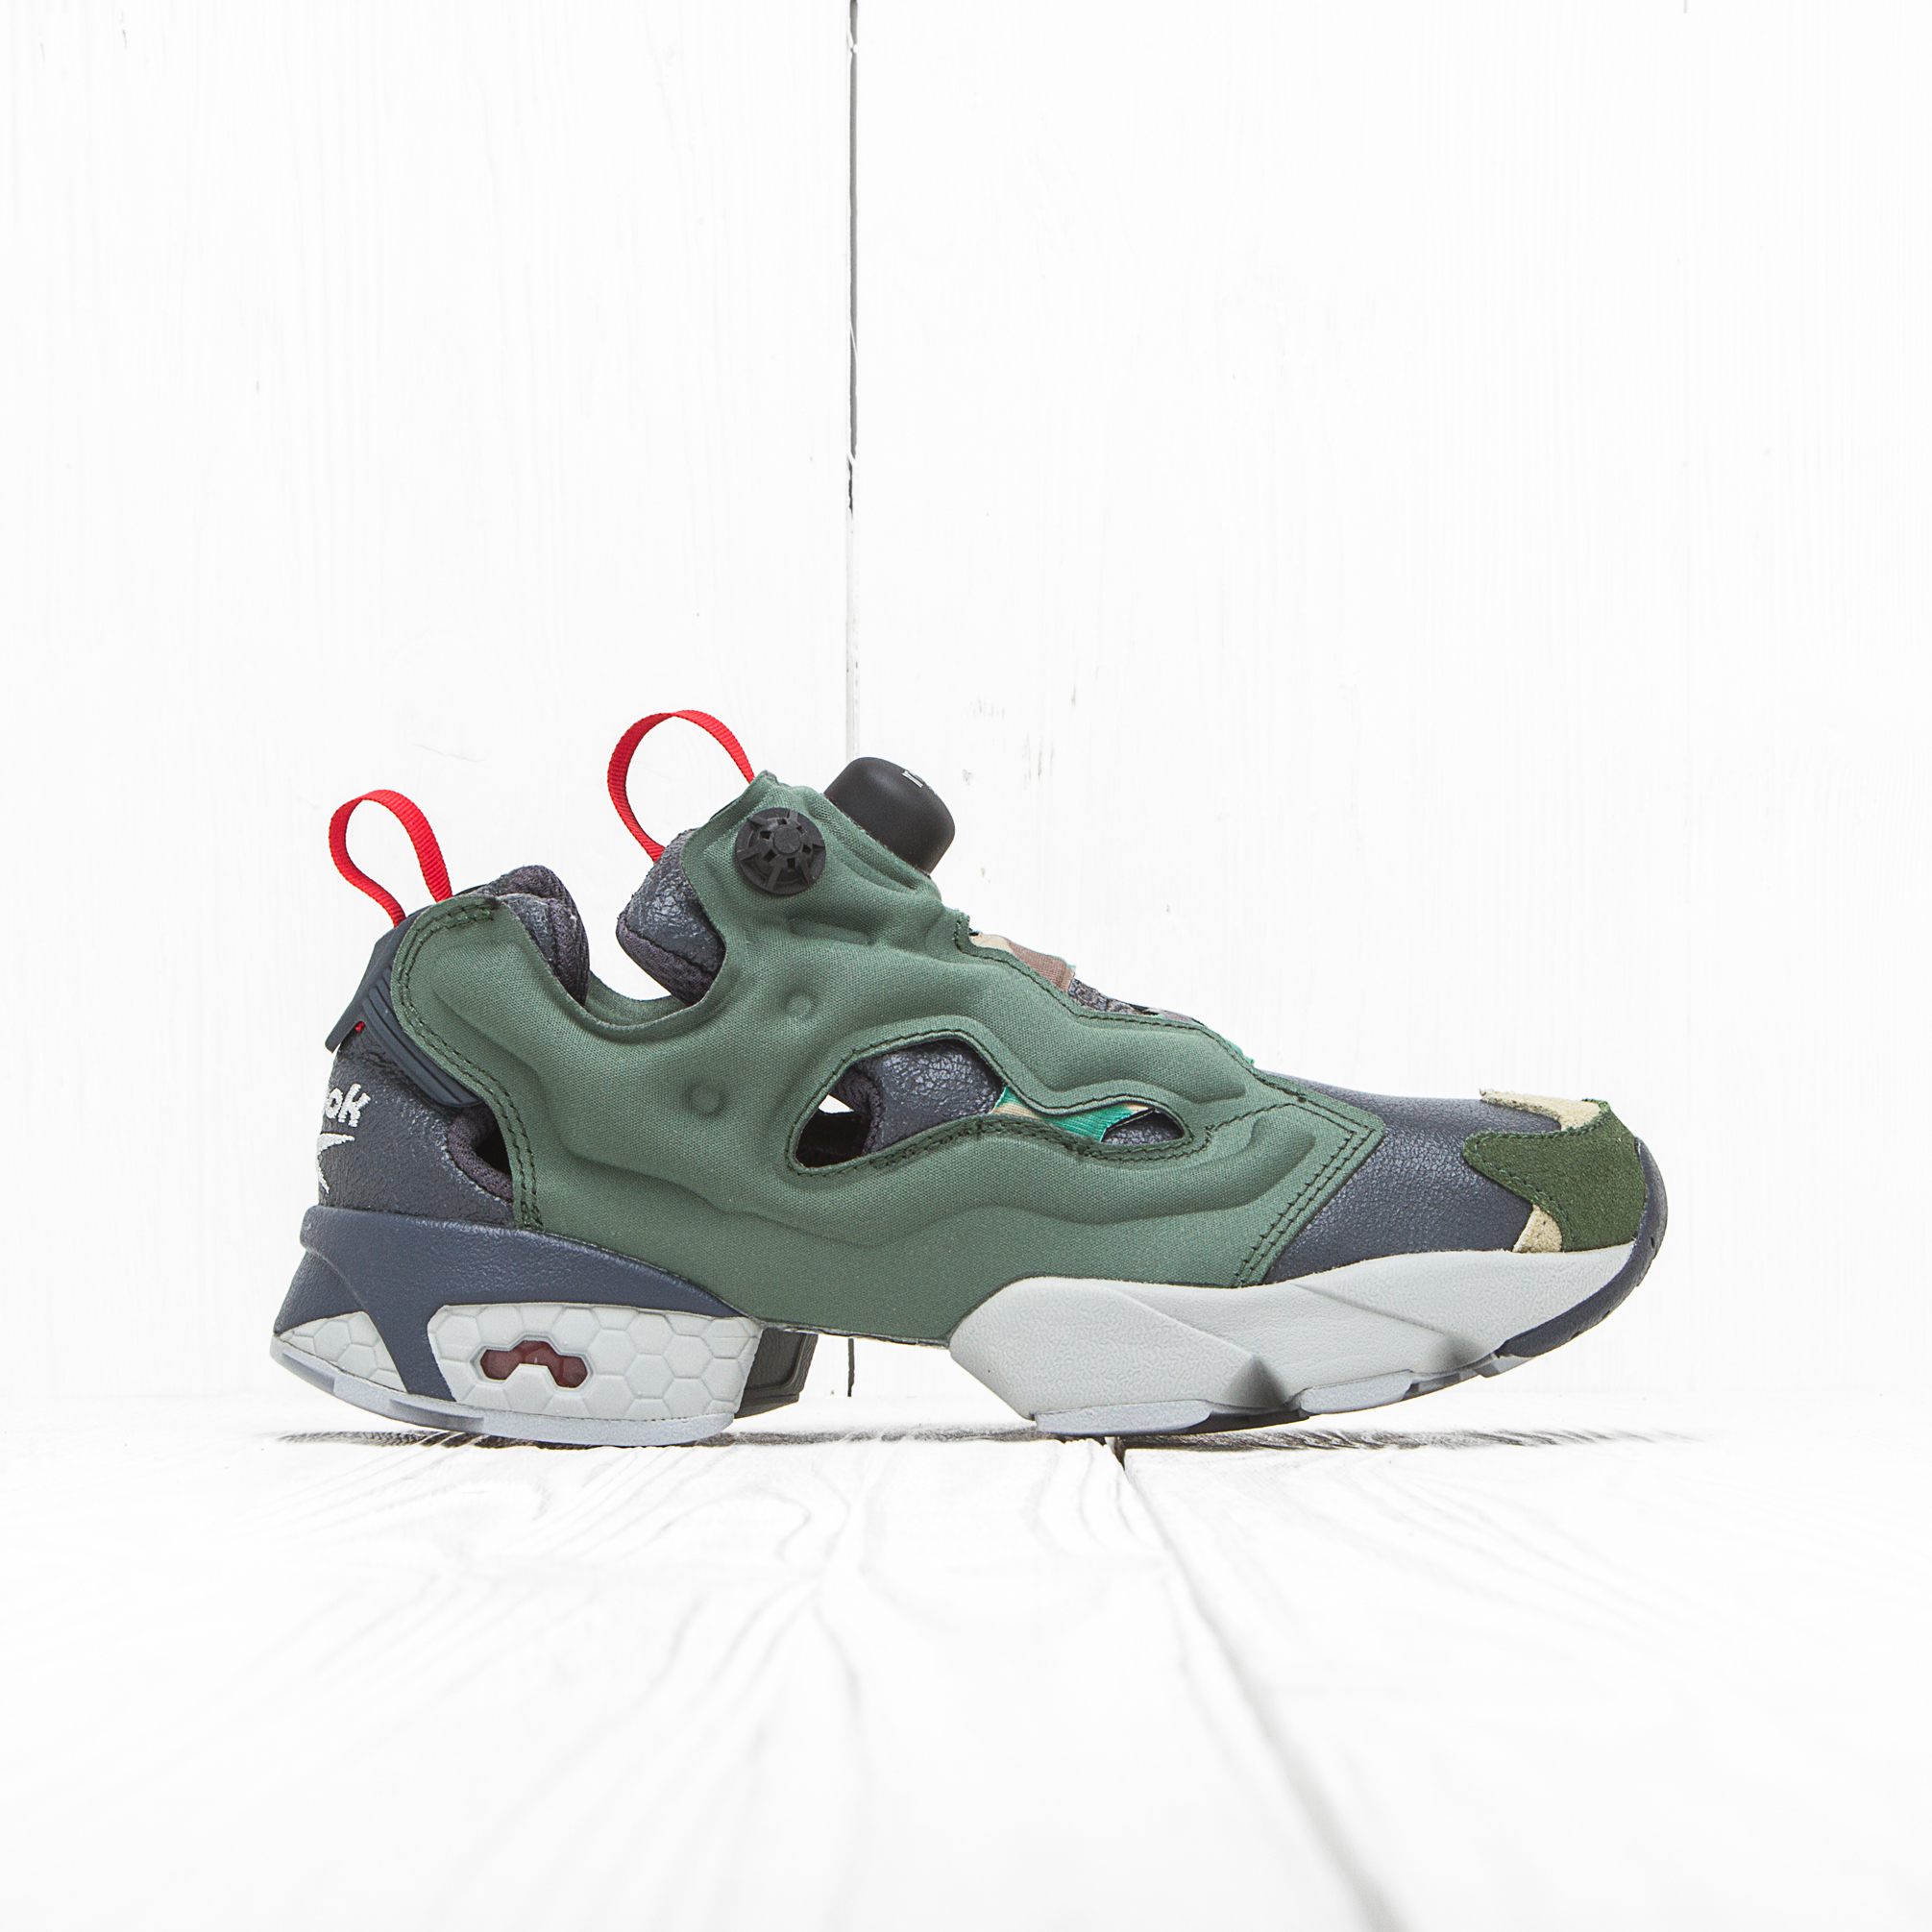 Кроссовки Reebok INSTA PUMP FURY OG Black/Primal Green/Baseball Grey/Scarlet